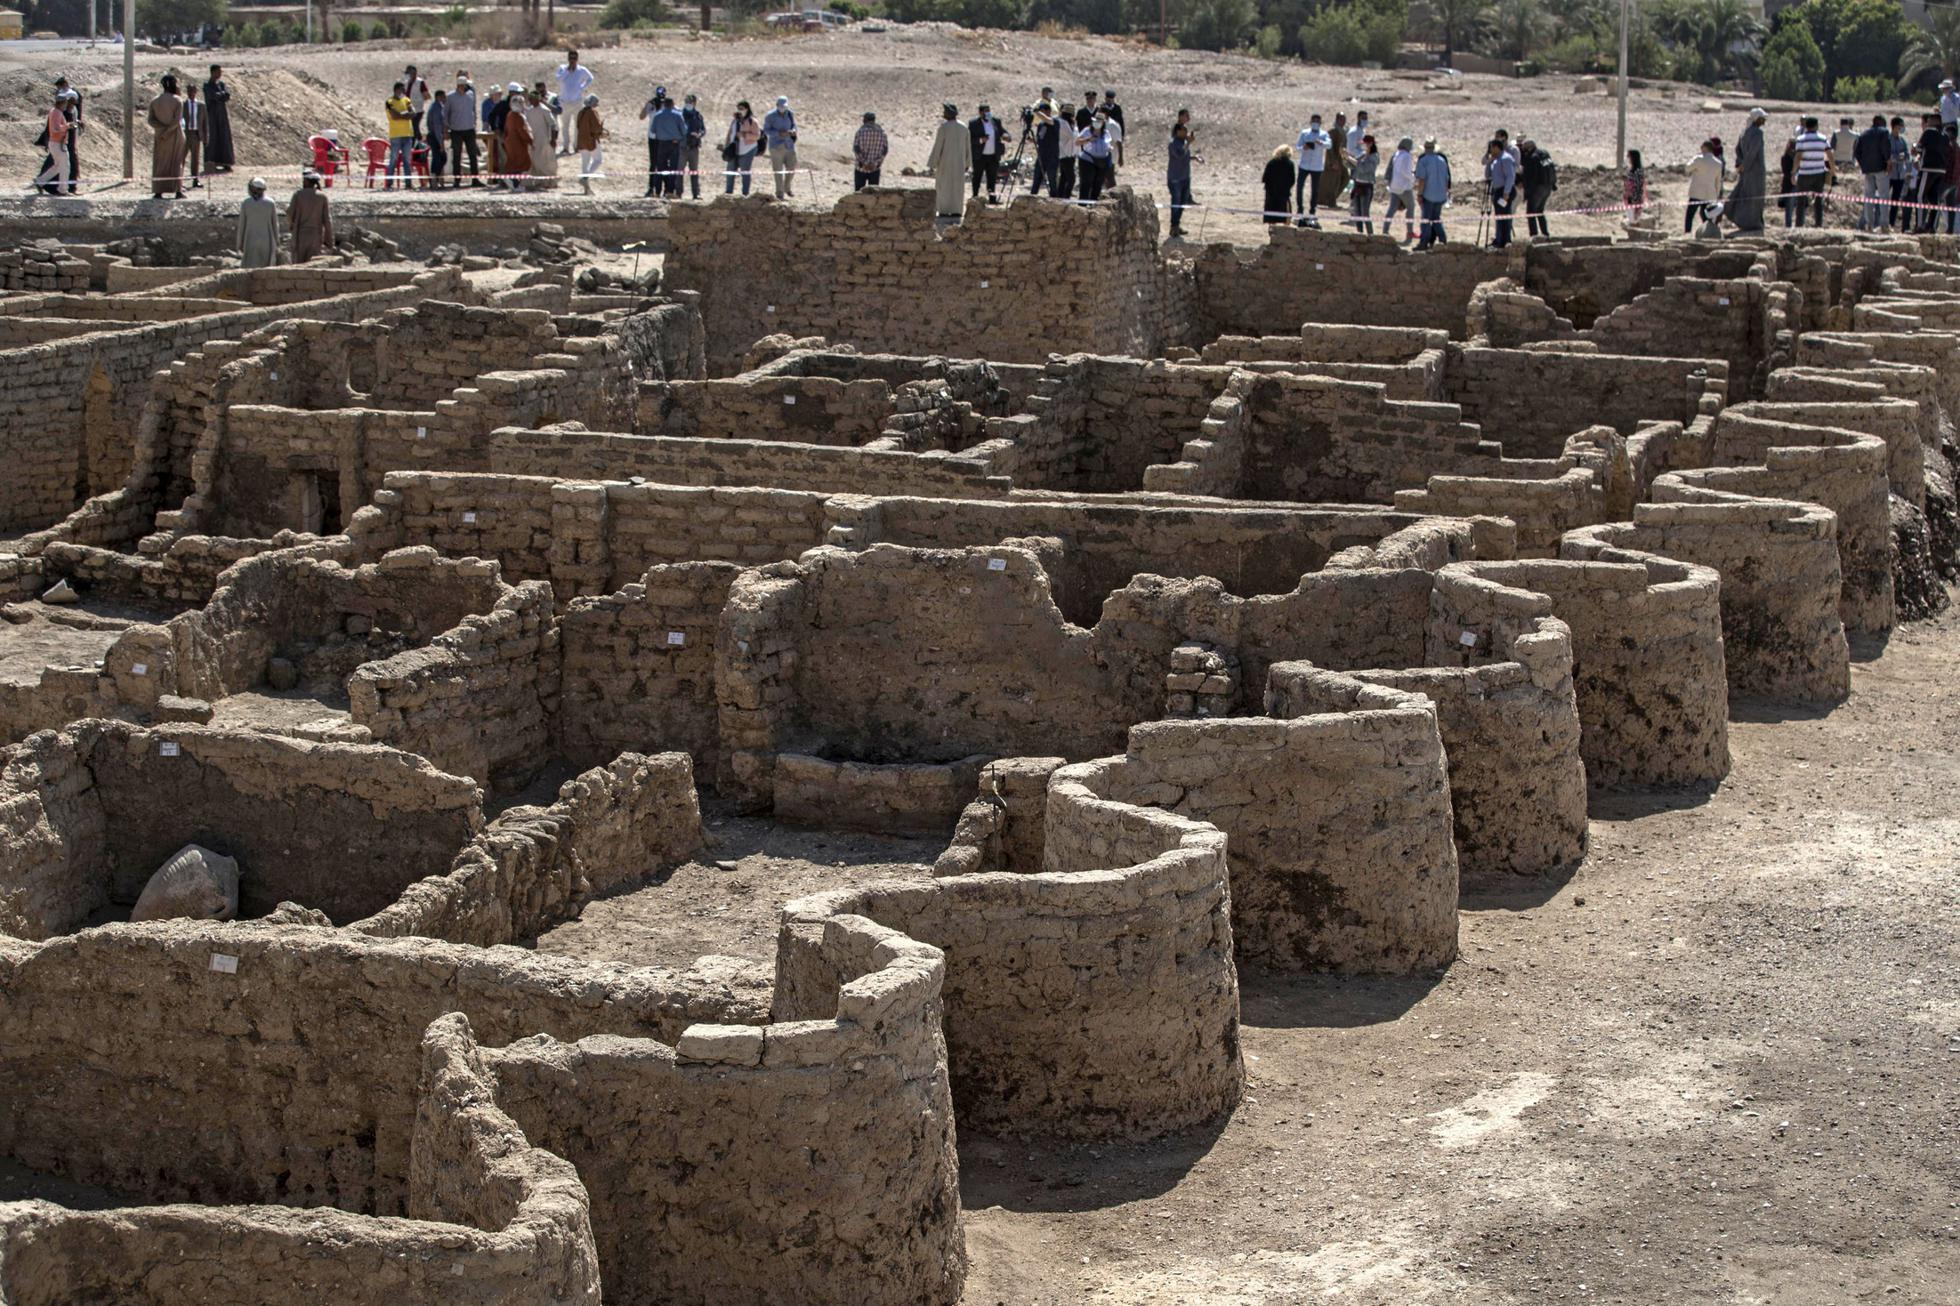 Egypt's 3,400-Year-Old 'Lost Golden City' Is Unearthed From Desert Sands